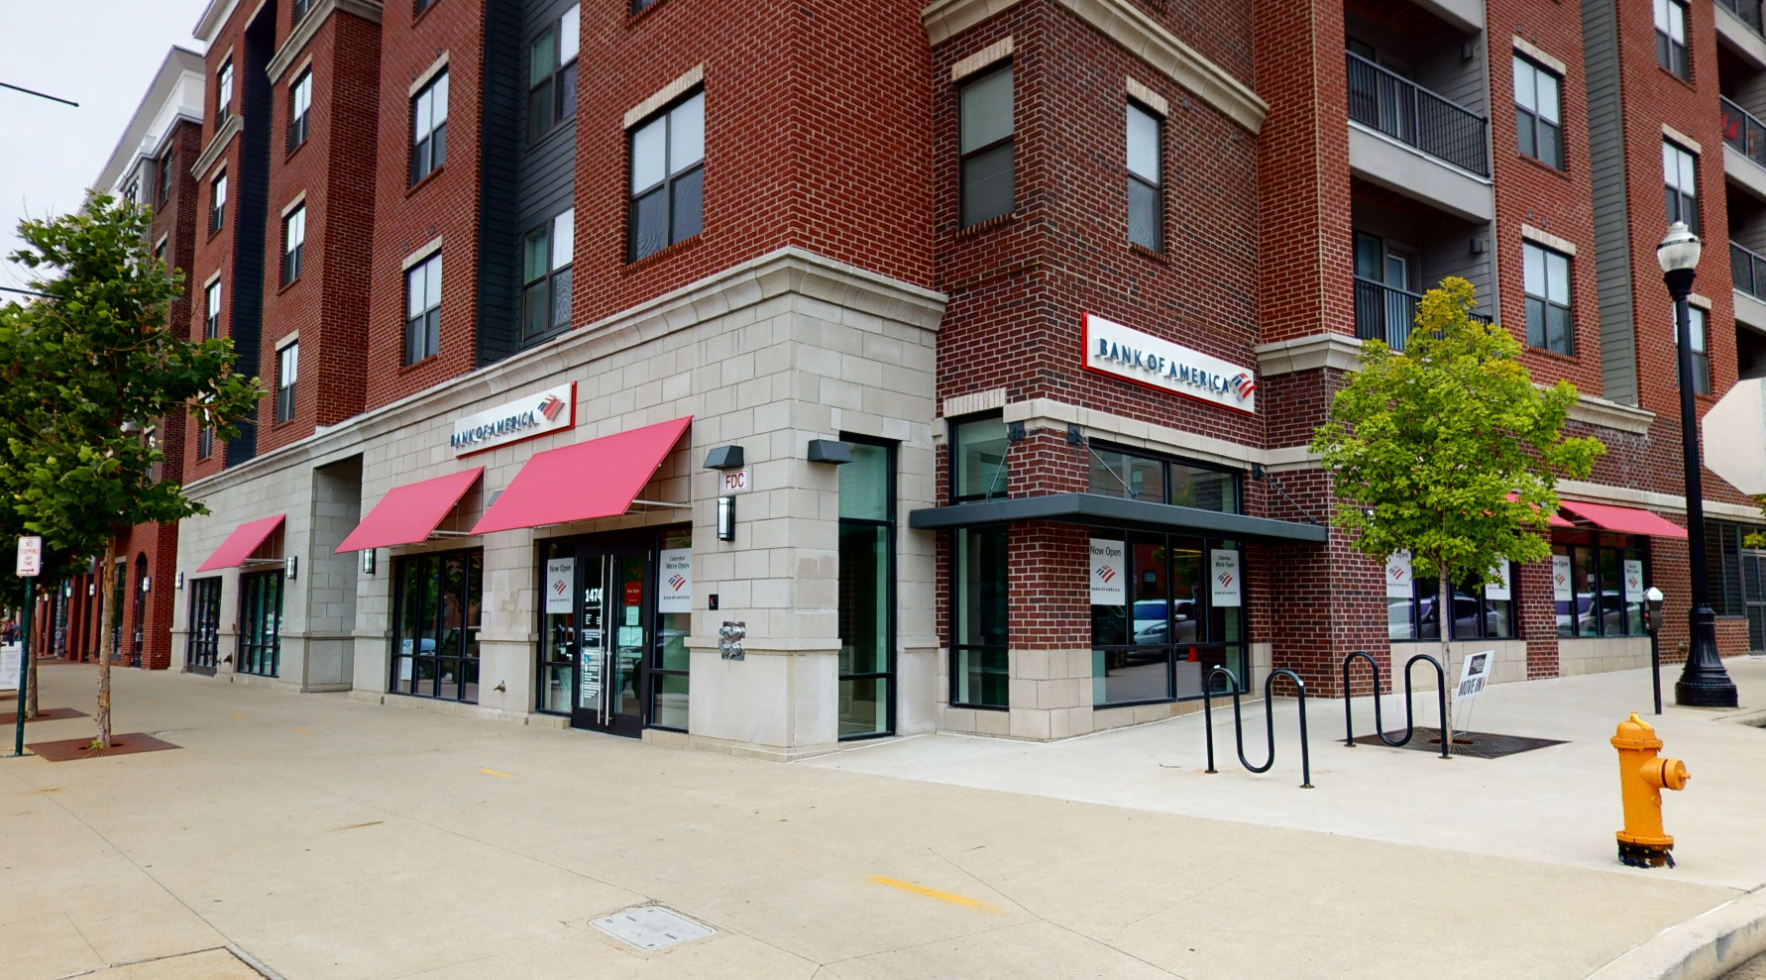 Bank of America financial center with walk-up ATM   1474 N High St, Columbus, OH 43201